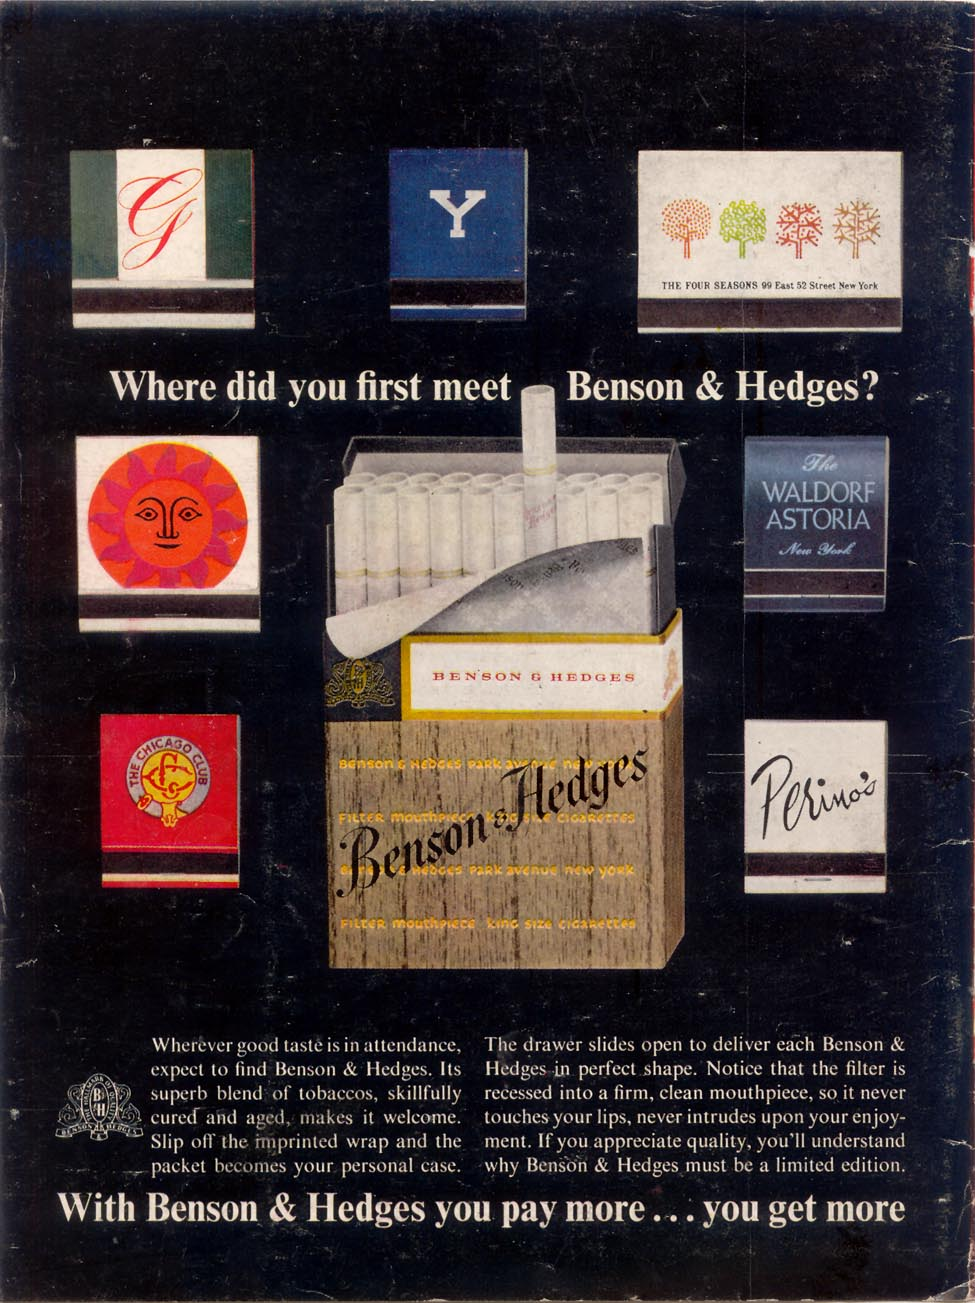 BENSON & HEDGES CIGARETTES TIME 11/17/1961 BACK COVER